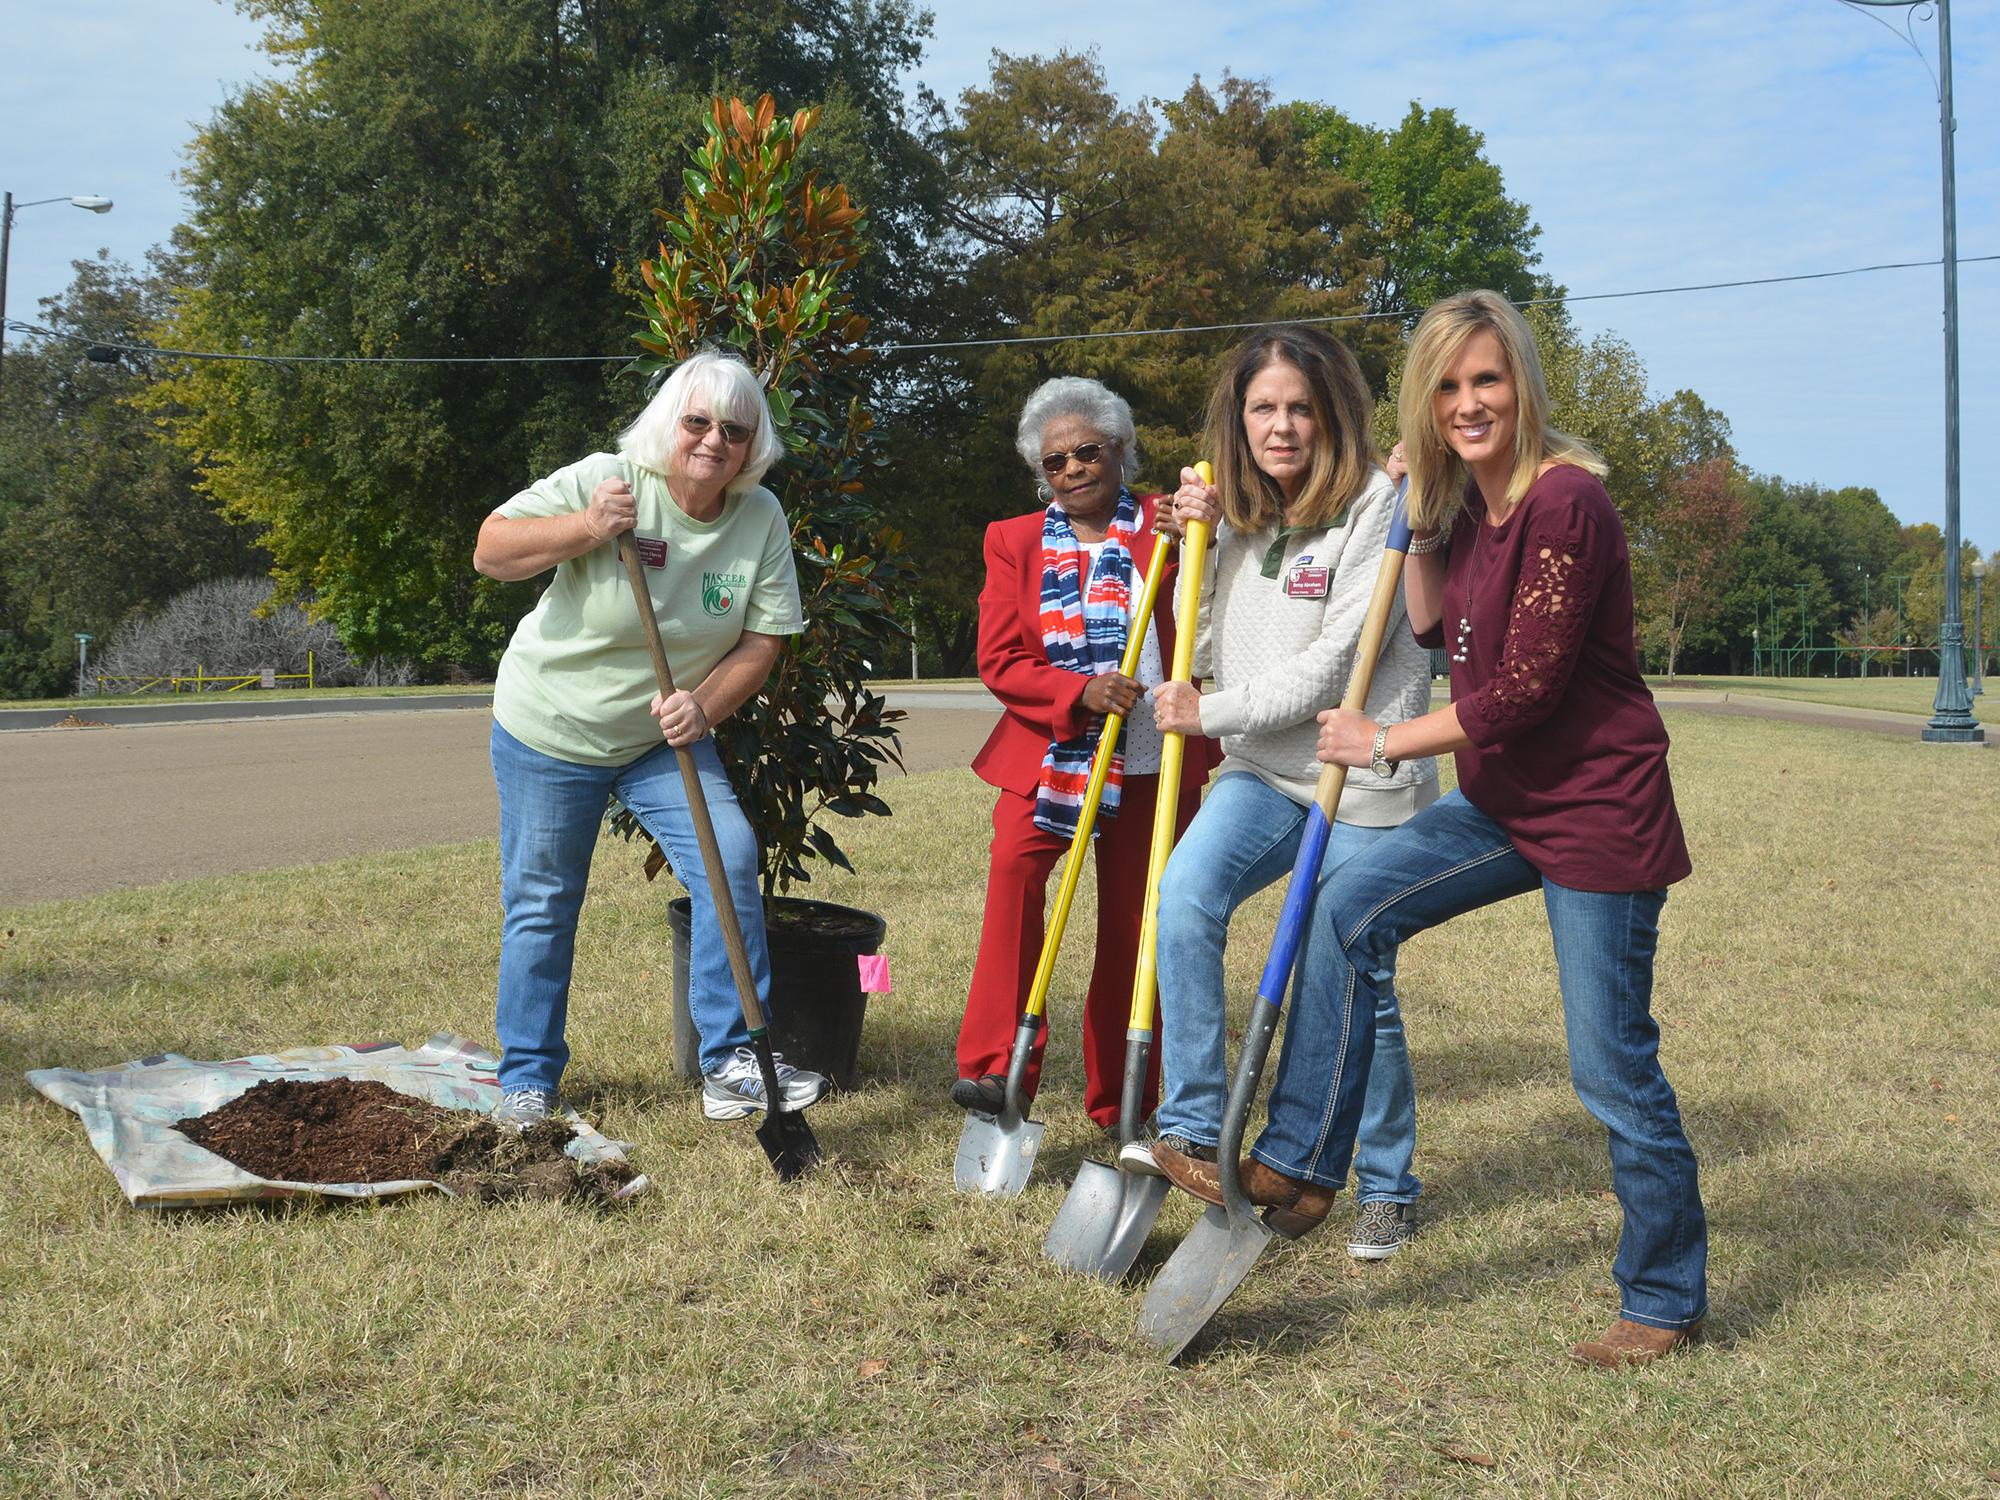 Four women, each with a foot on her shovel, look at the camera as they prepare to dig a hole for a small tree.